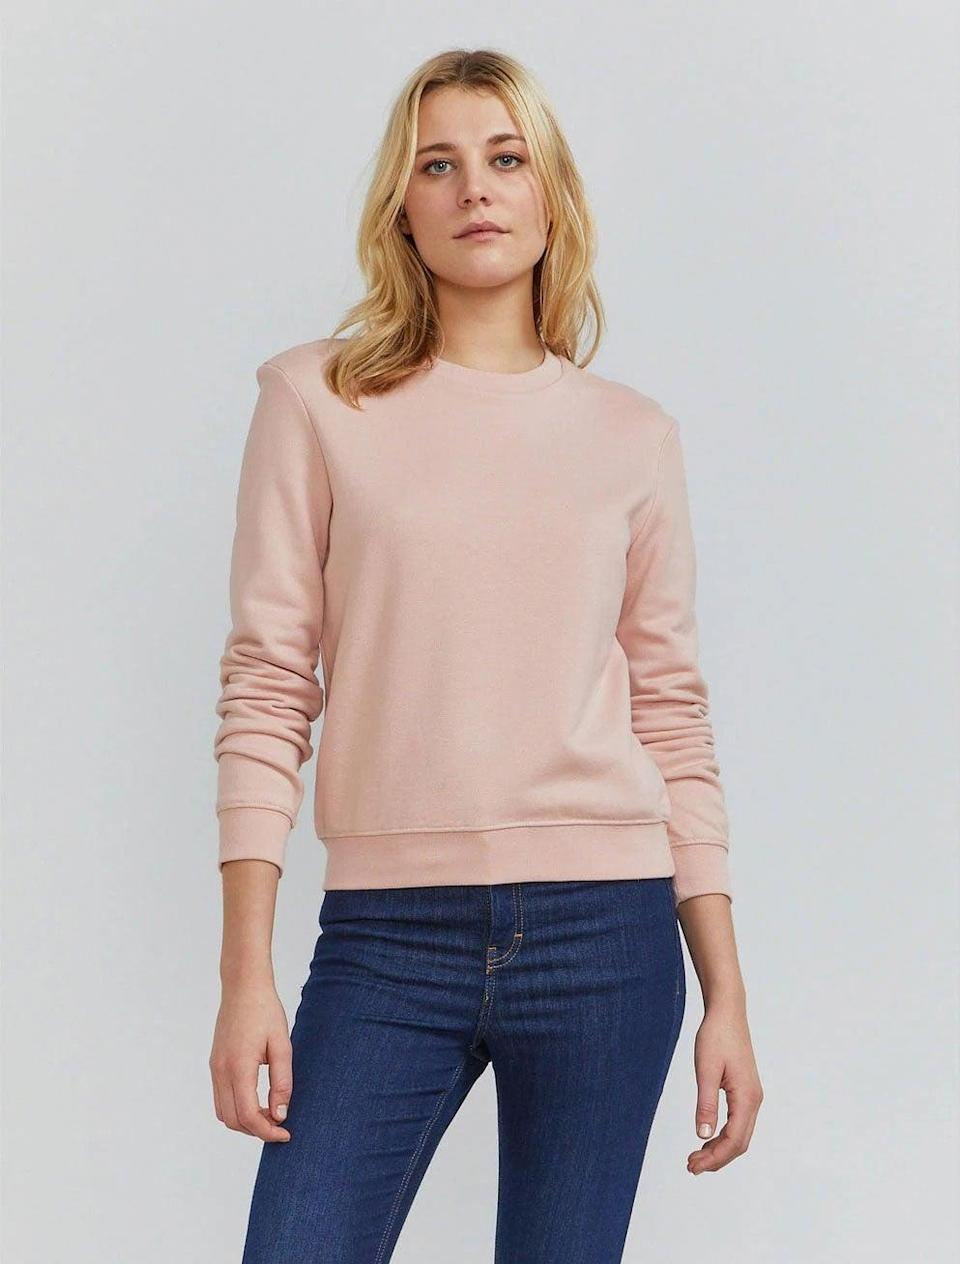 """<br><br><strong>Ninety Percent</strong> Organic Cotton Classic-fit Sweatshirt, $, available at <a href=""""https://ninetypercent.com/collections/loungewear/products/classic-ls-crew-sweatshirt"""" rel=""""nofollow noopener"""" target=""""_blank"""" data-ylk=""""slk:Ninety Percent"""" class=""""link rapid-noclick-resp"""">Ninety Percent</a>"""